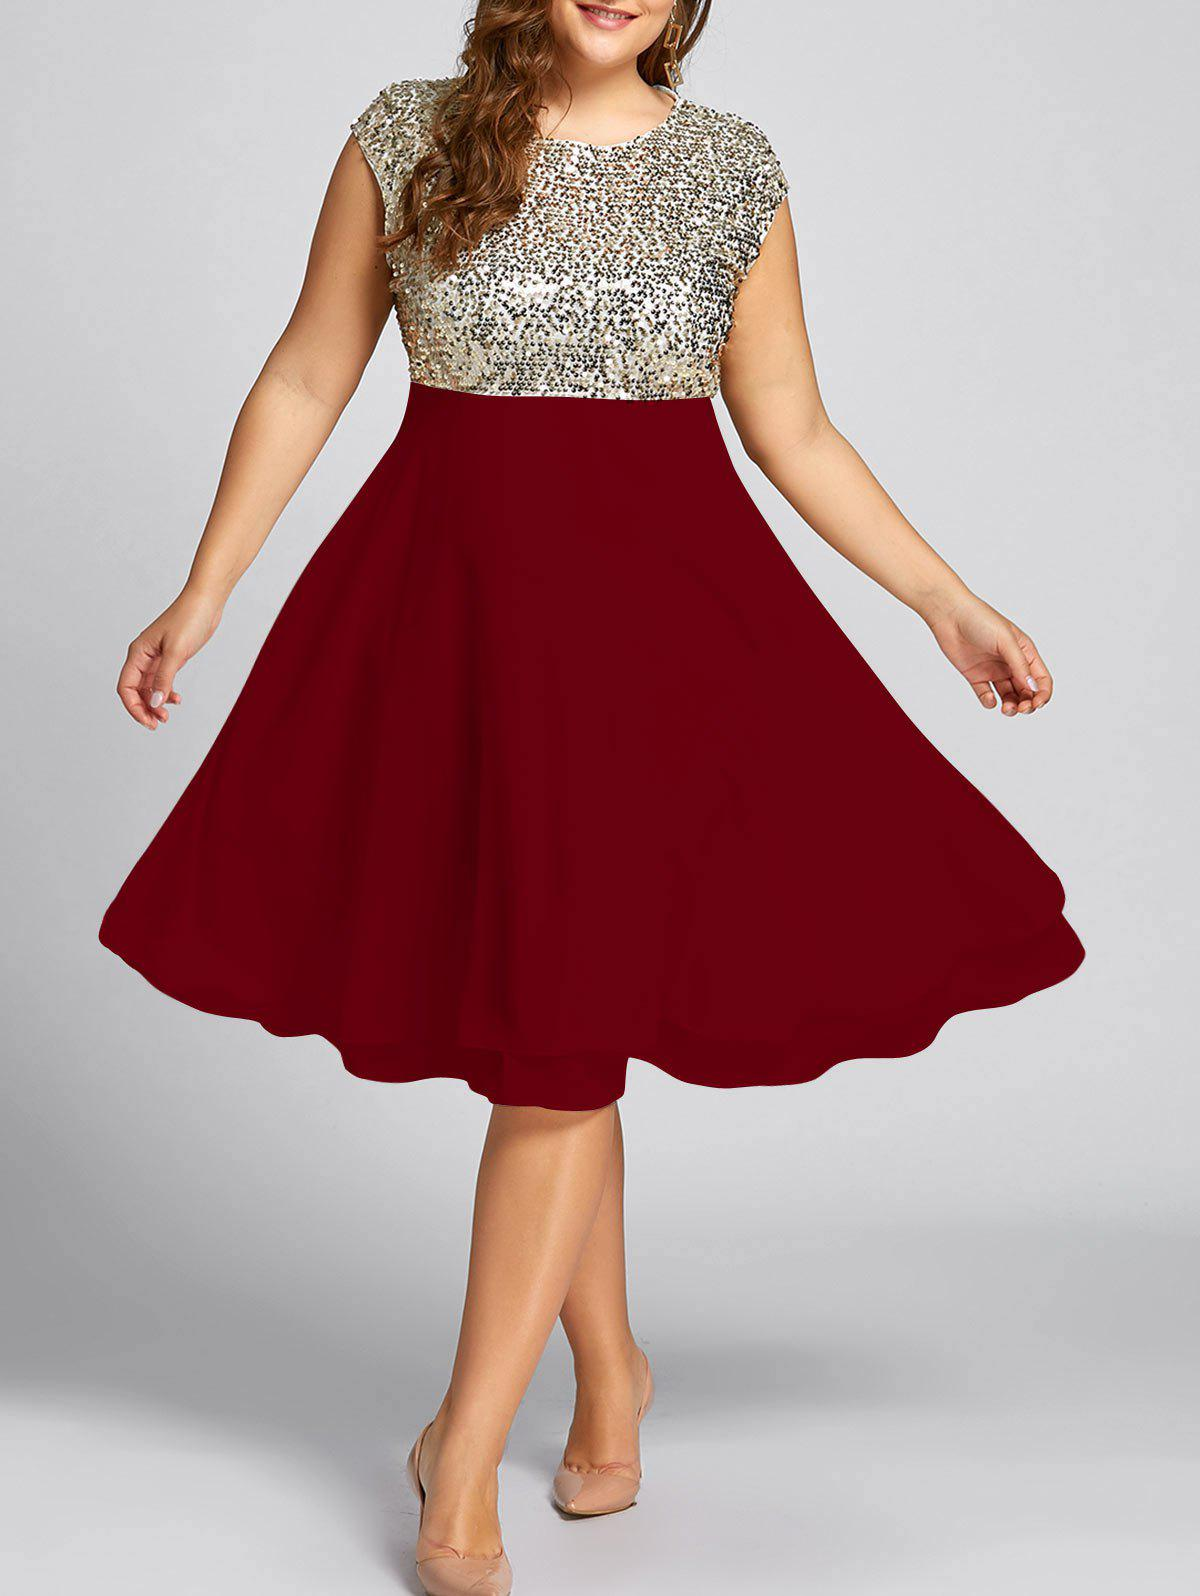 7d8173dc4 48% OFF  Flounce Plus Size Sparkly Sequin Cocktail Dress